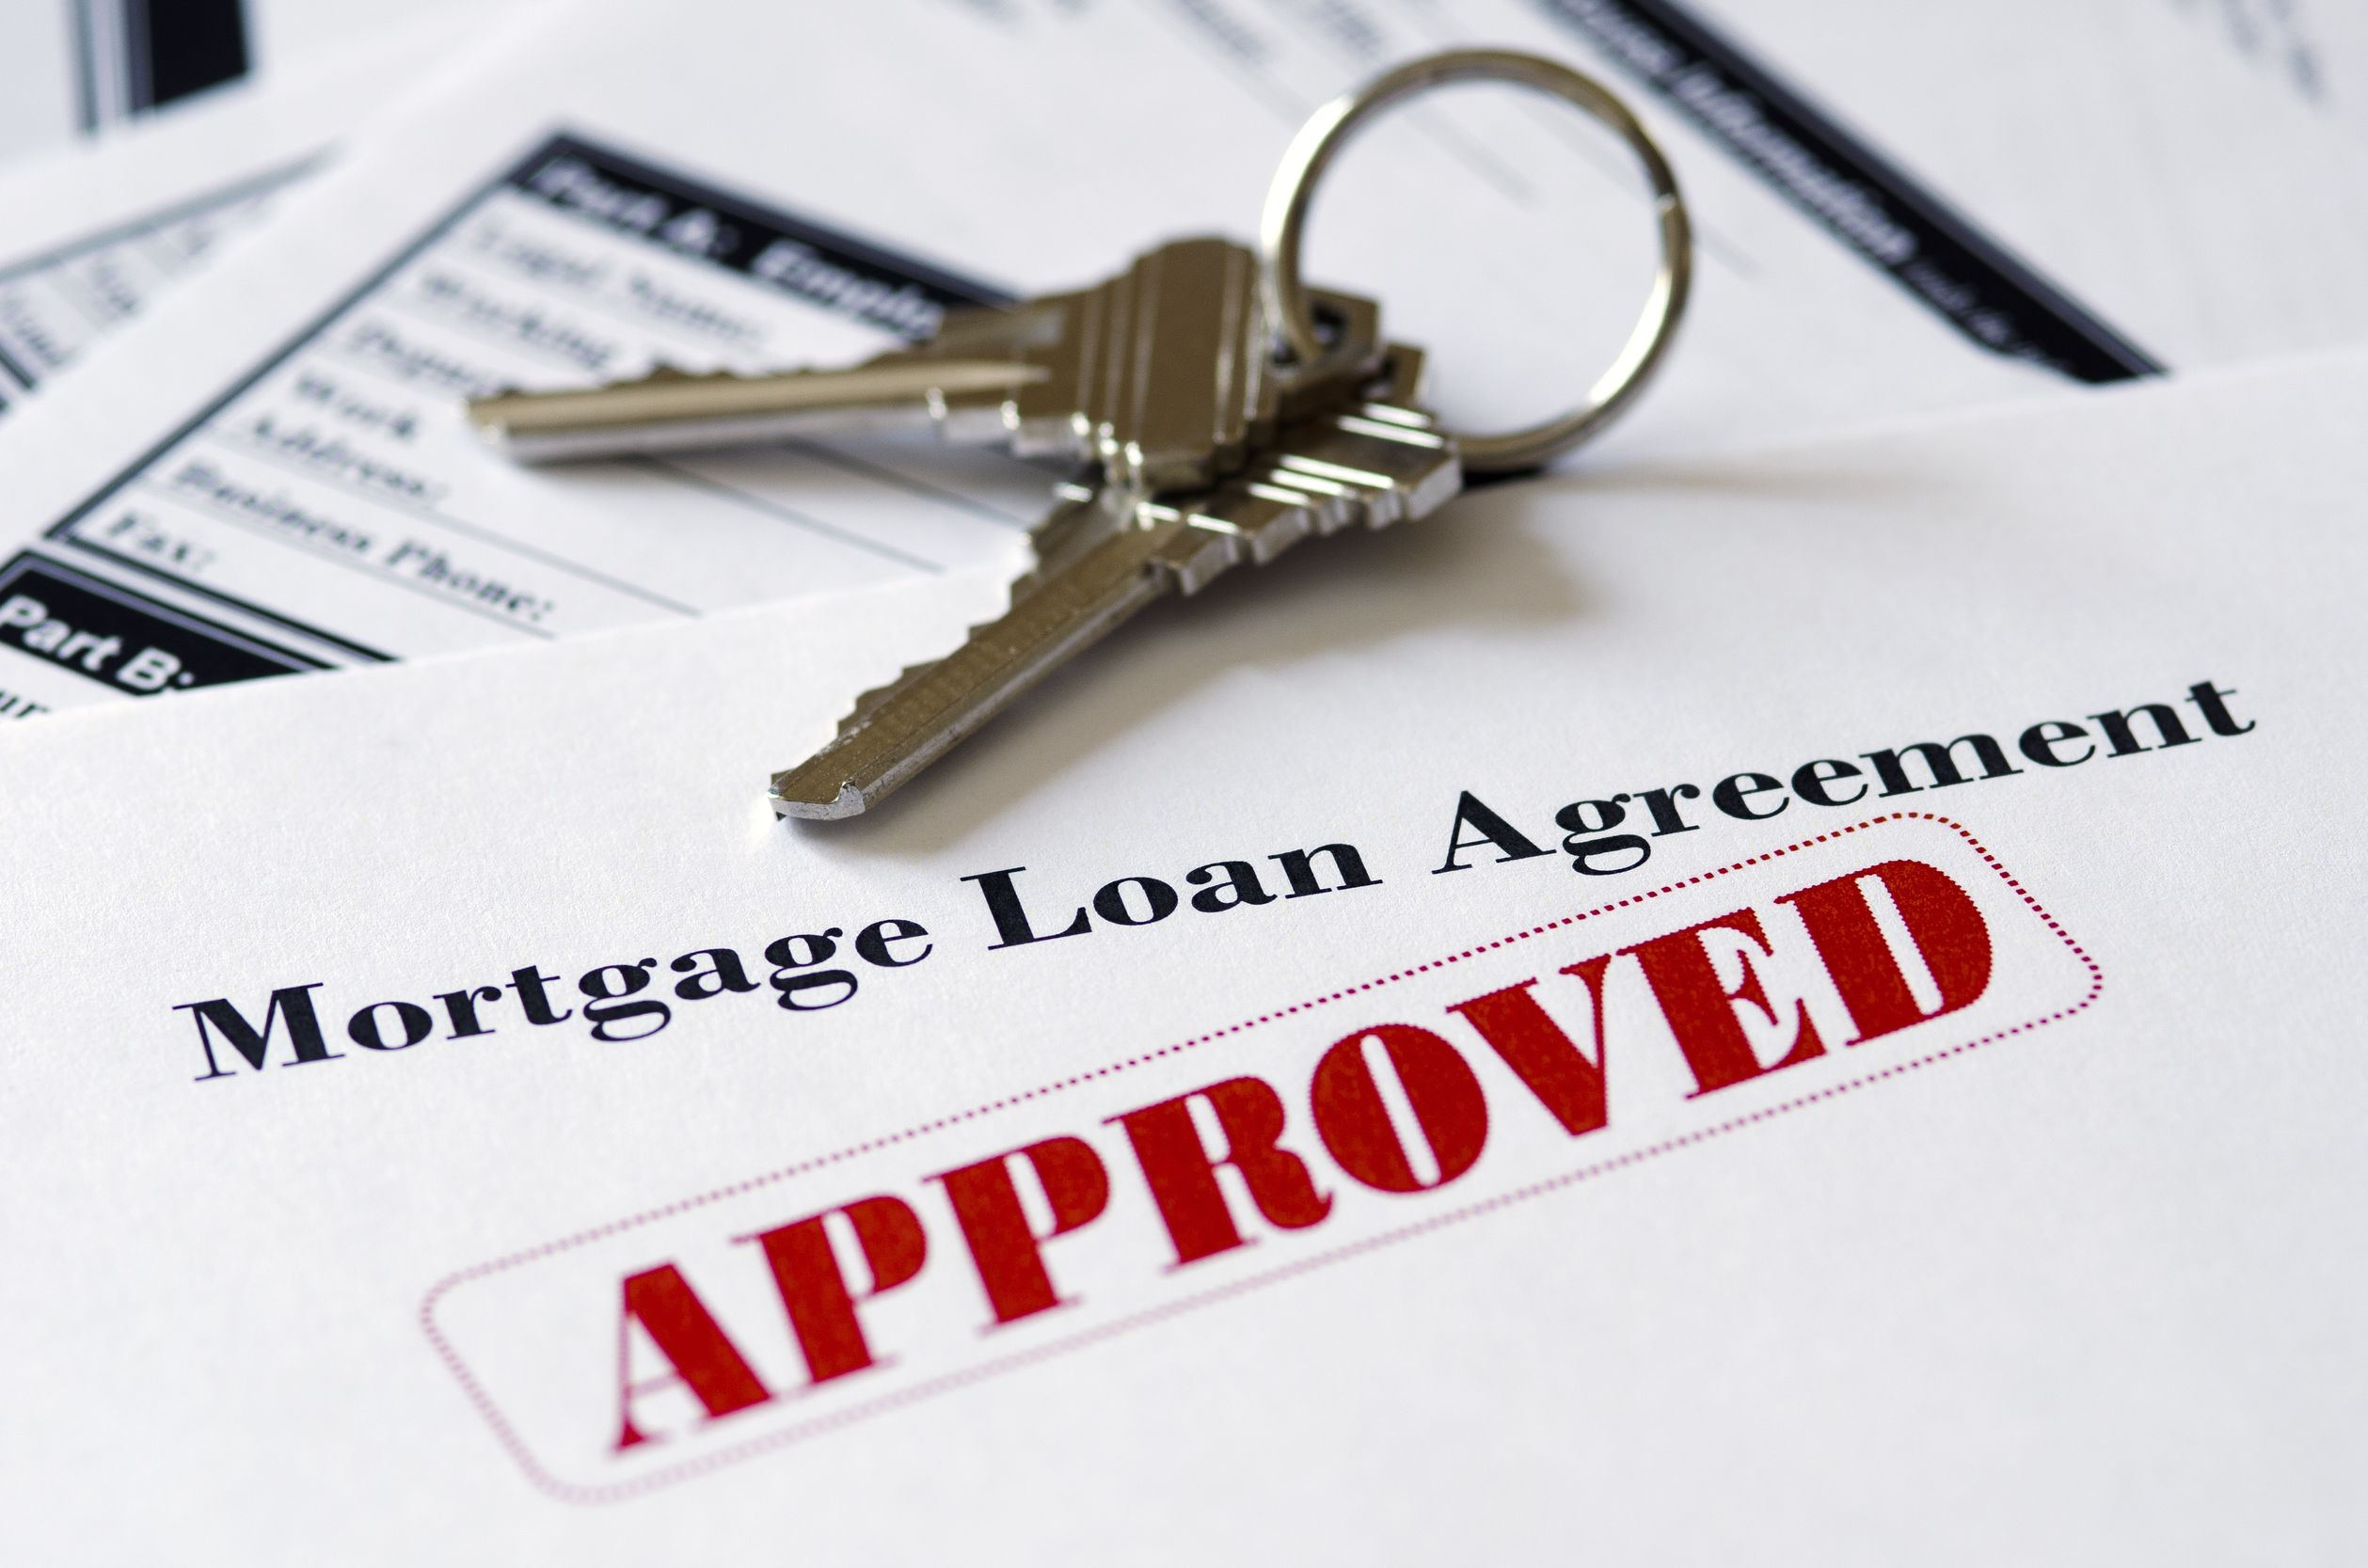 5 Tips to Get Mortgage Approval without Hassles